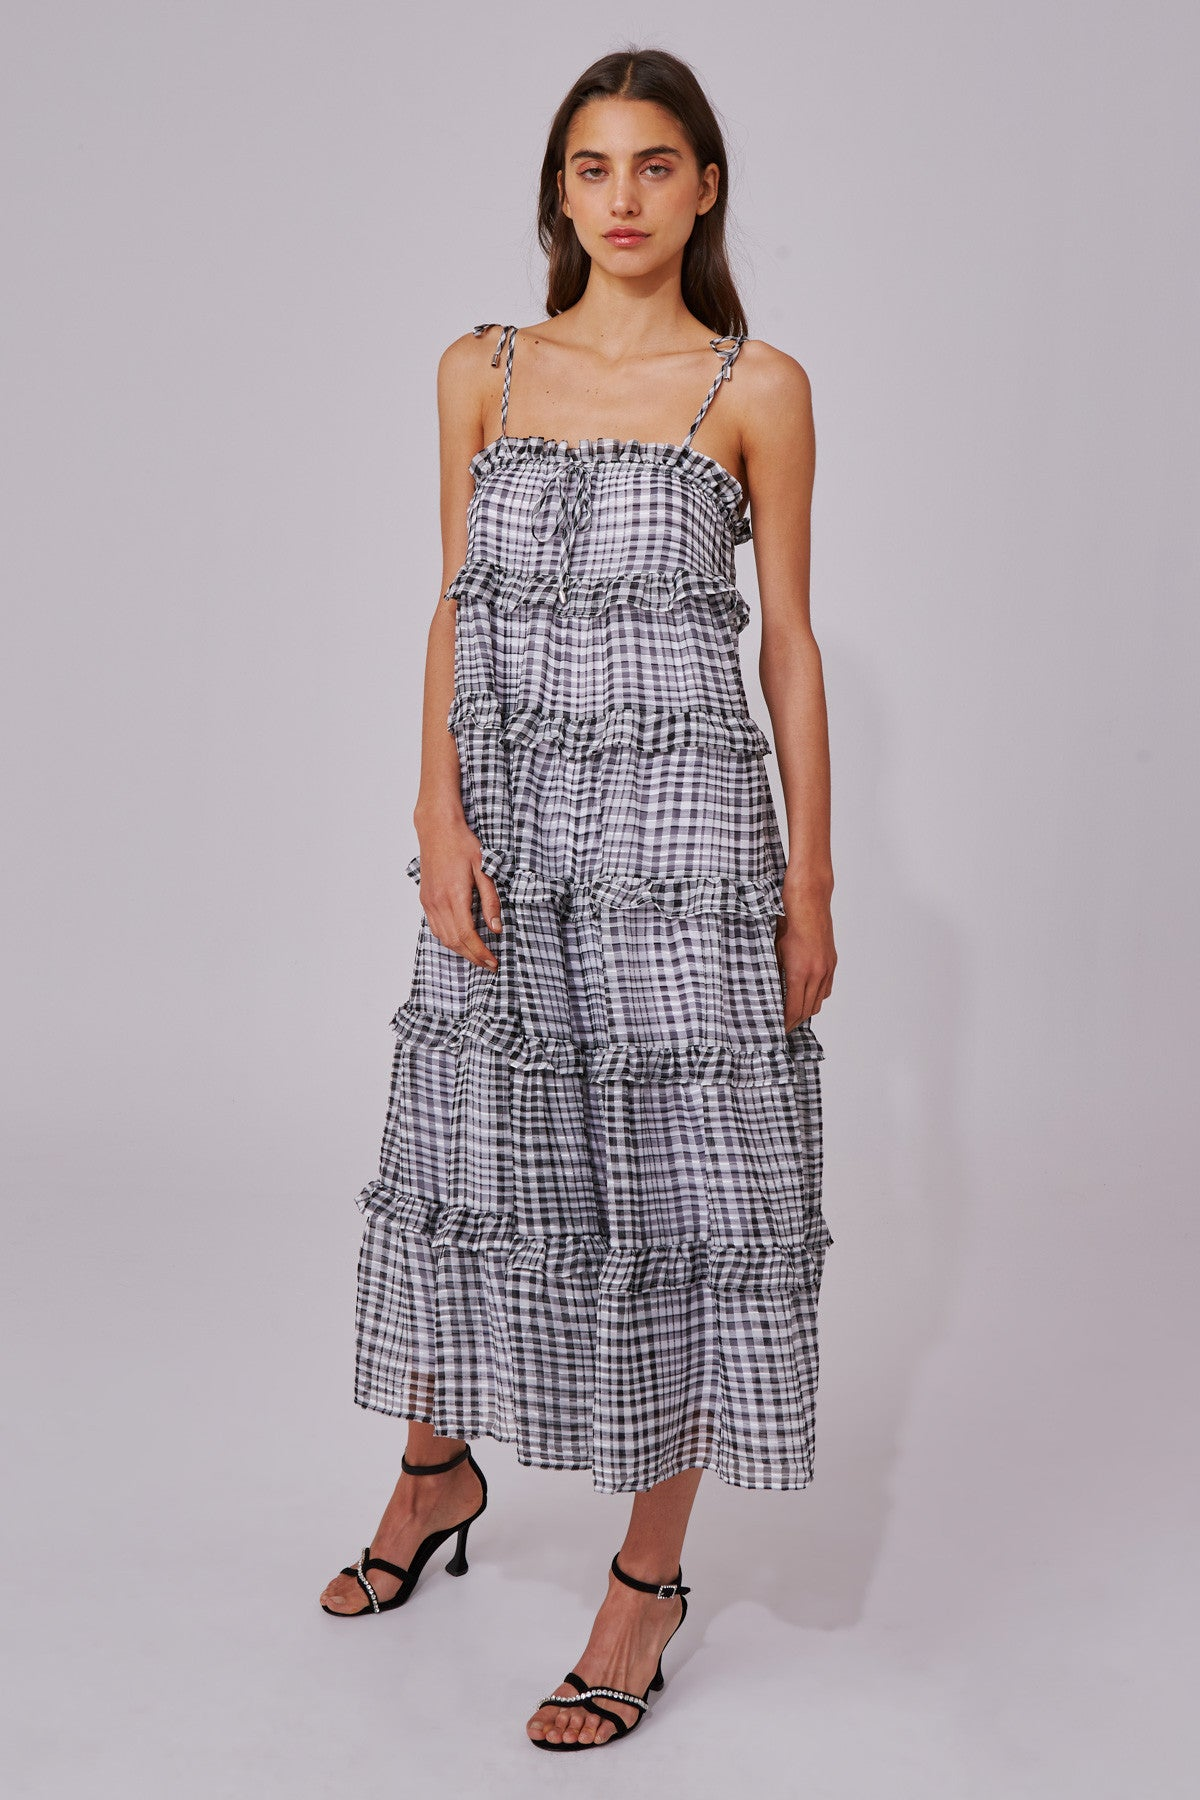 STEALING SUNSHINE DRESS black check